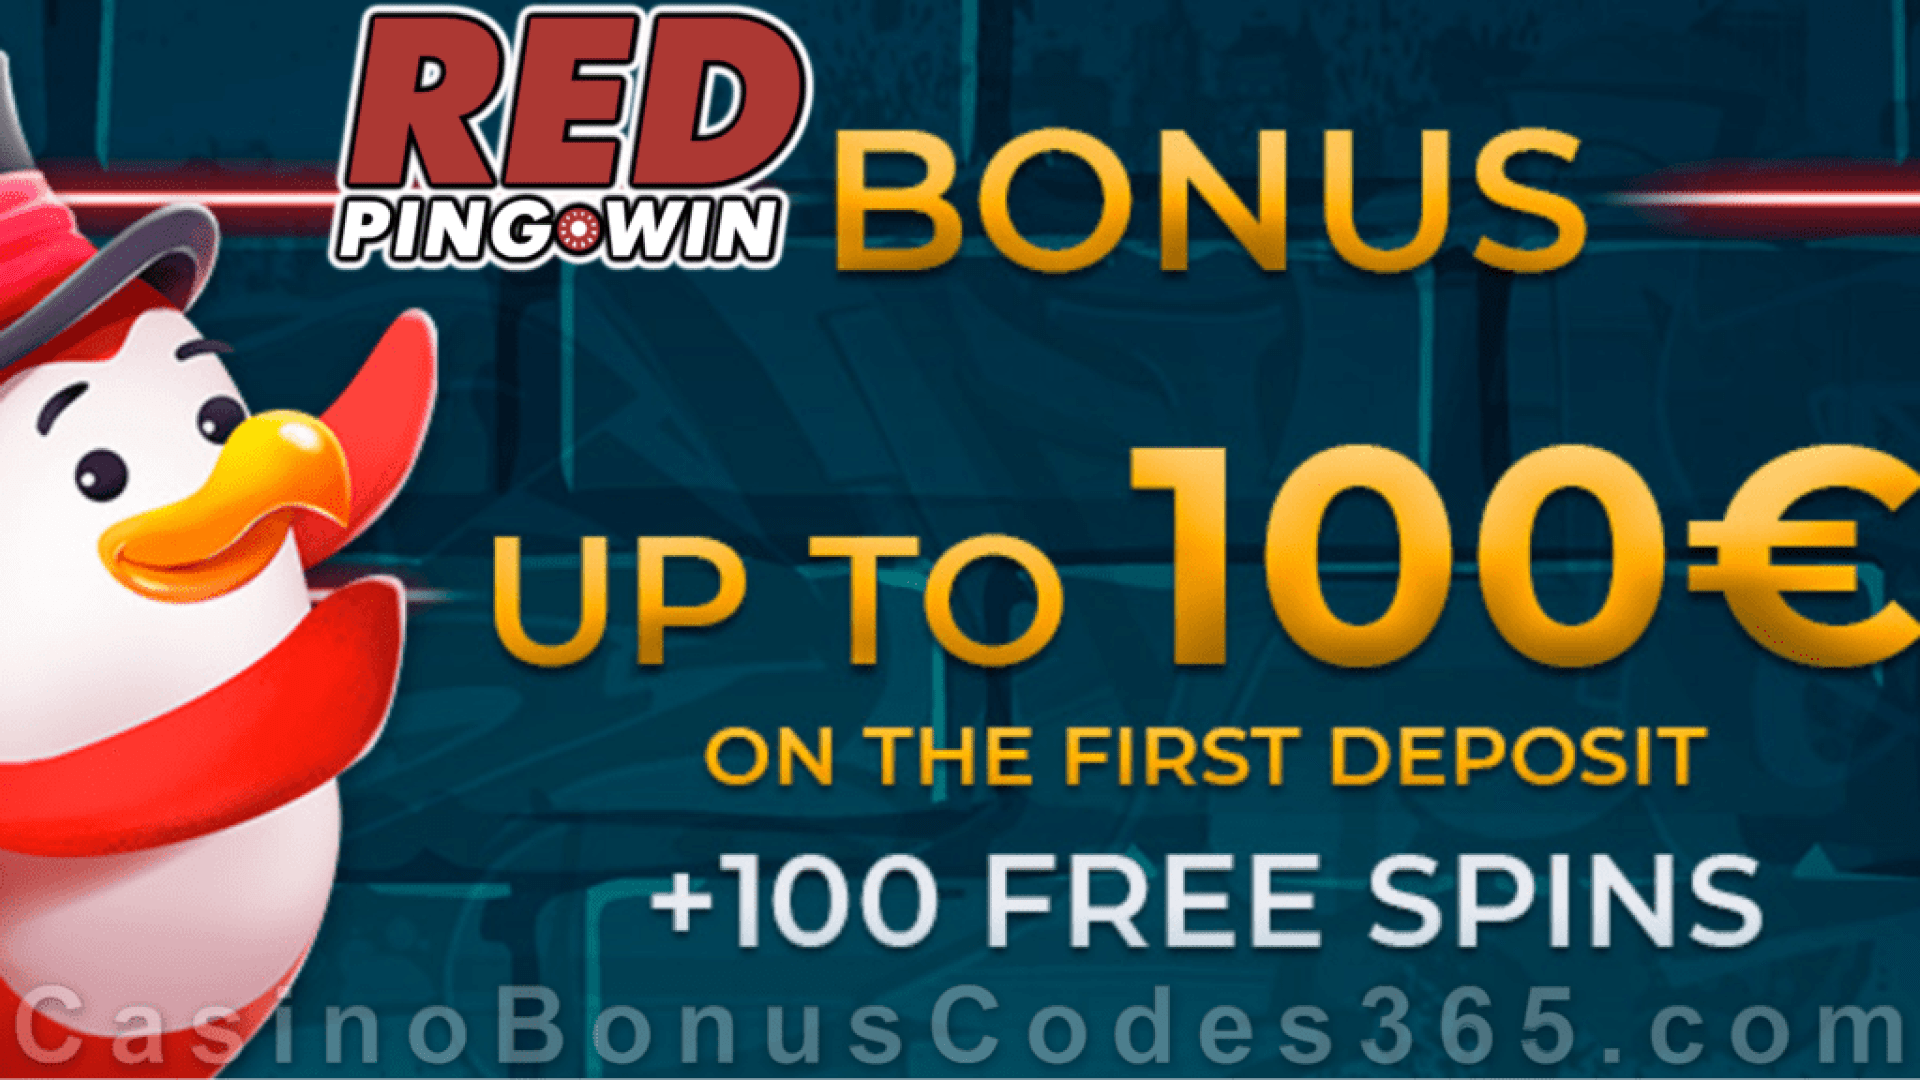 RED PingWin Casino €100 plus 100 FREE Spins First Deposit Bonus